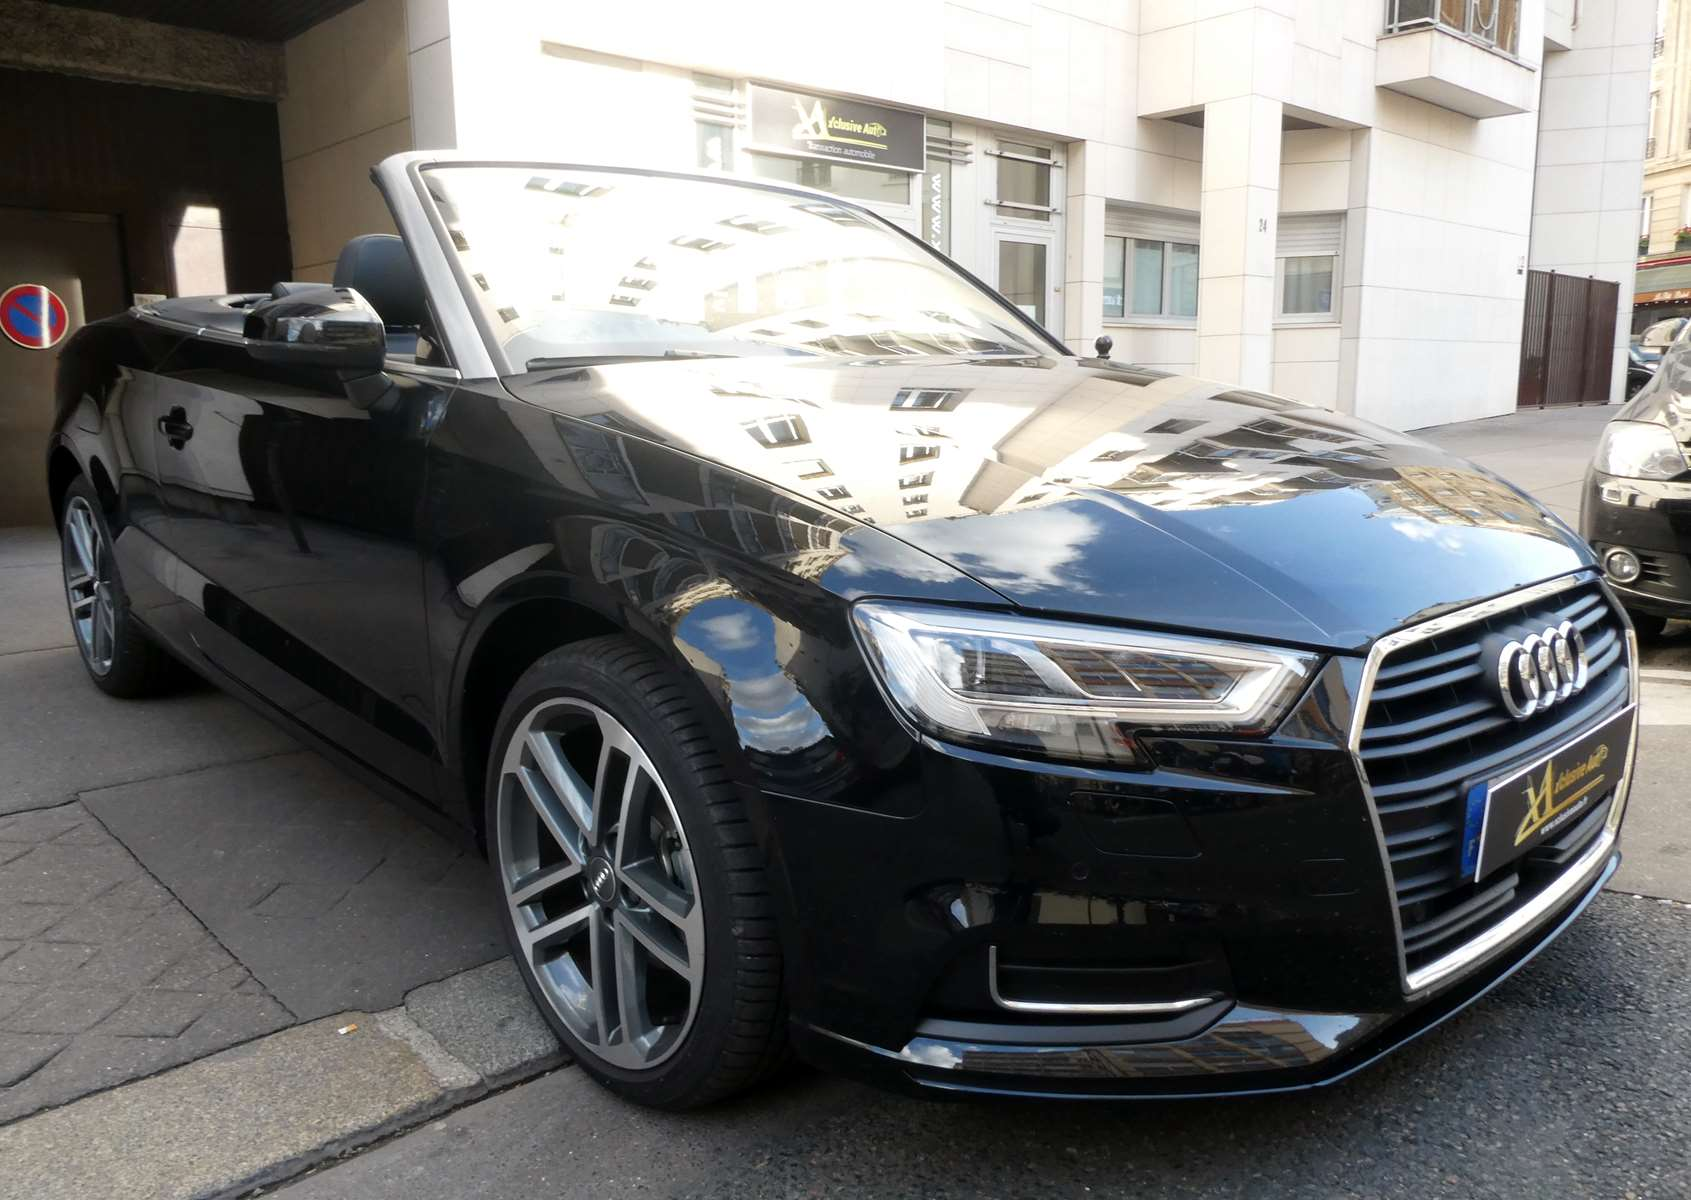 Audi A3 (2) cabriolet 35 TFSI 150 Design luxe S tronic 7 8